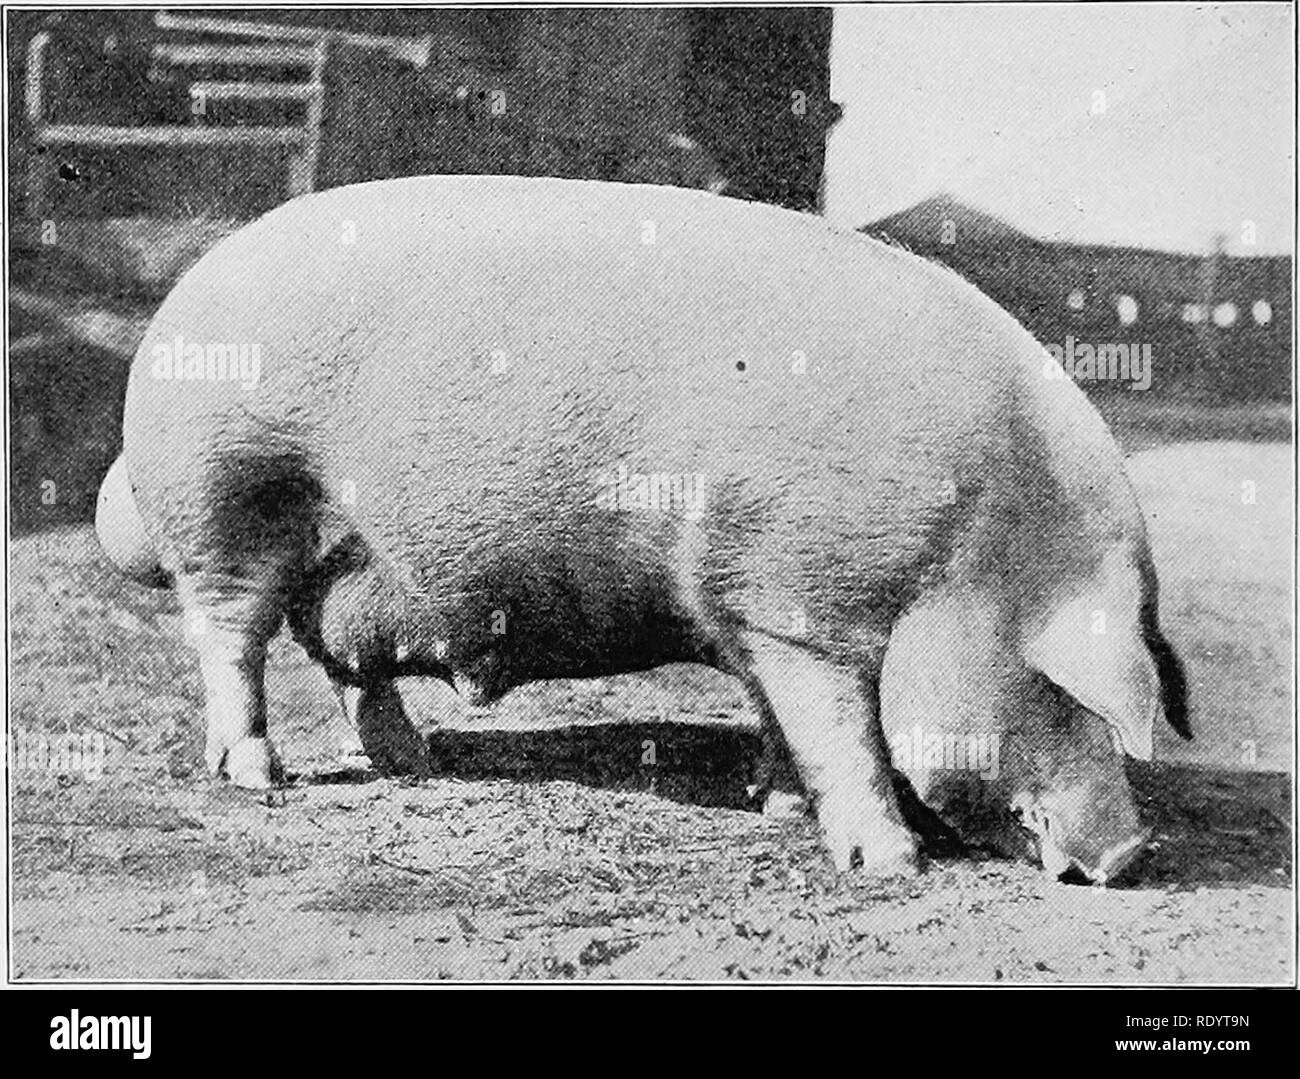 Feeding Pigs Black and White Stock Photos & Images - Alamy